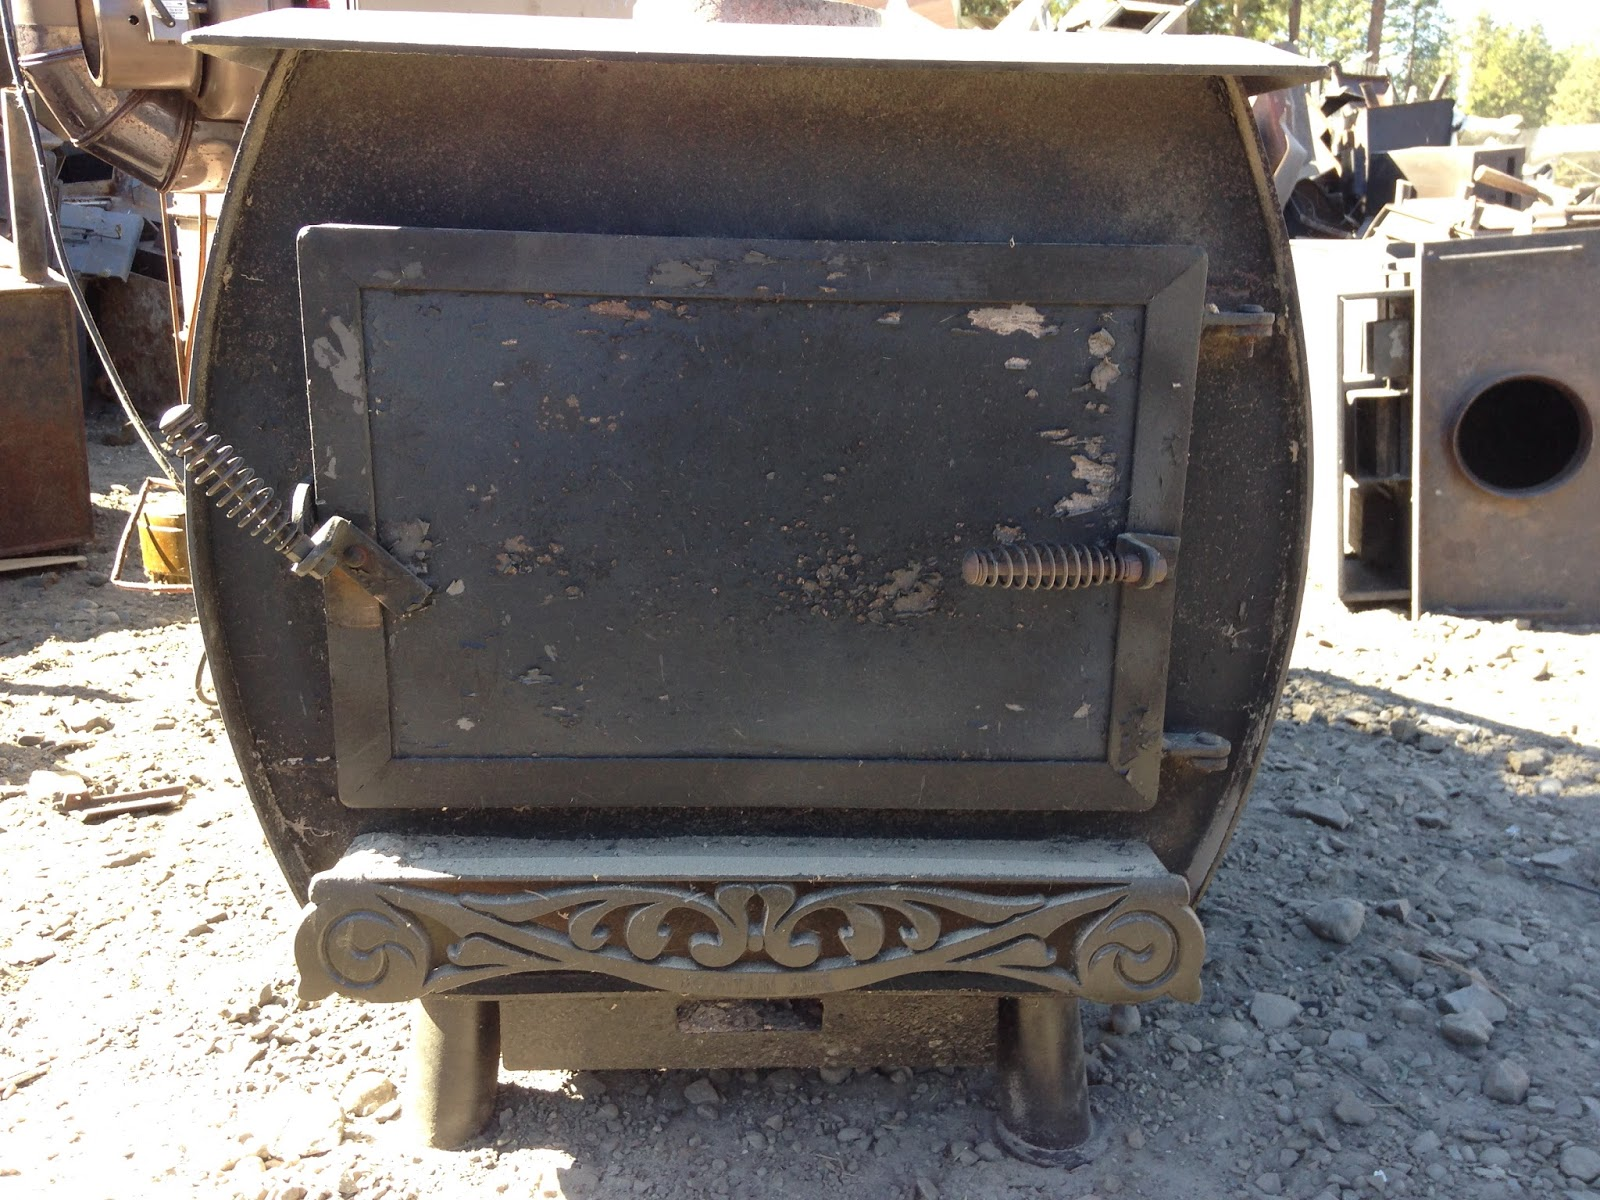 Turn in your old working wood stoves in Kittias County and earn $250.